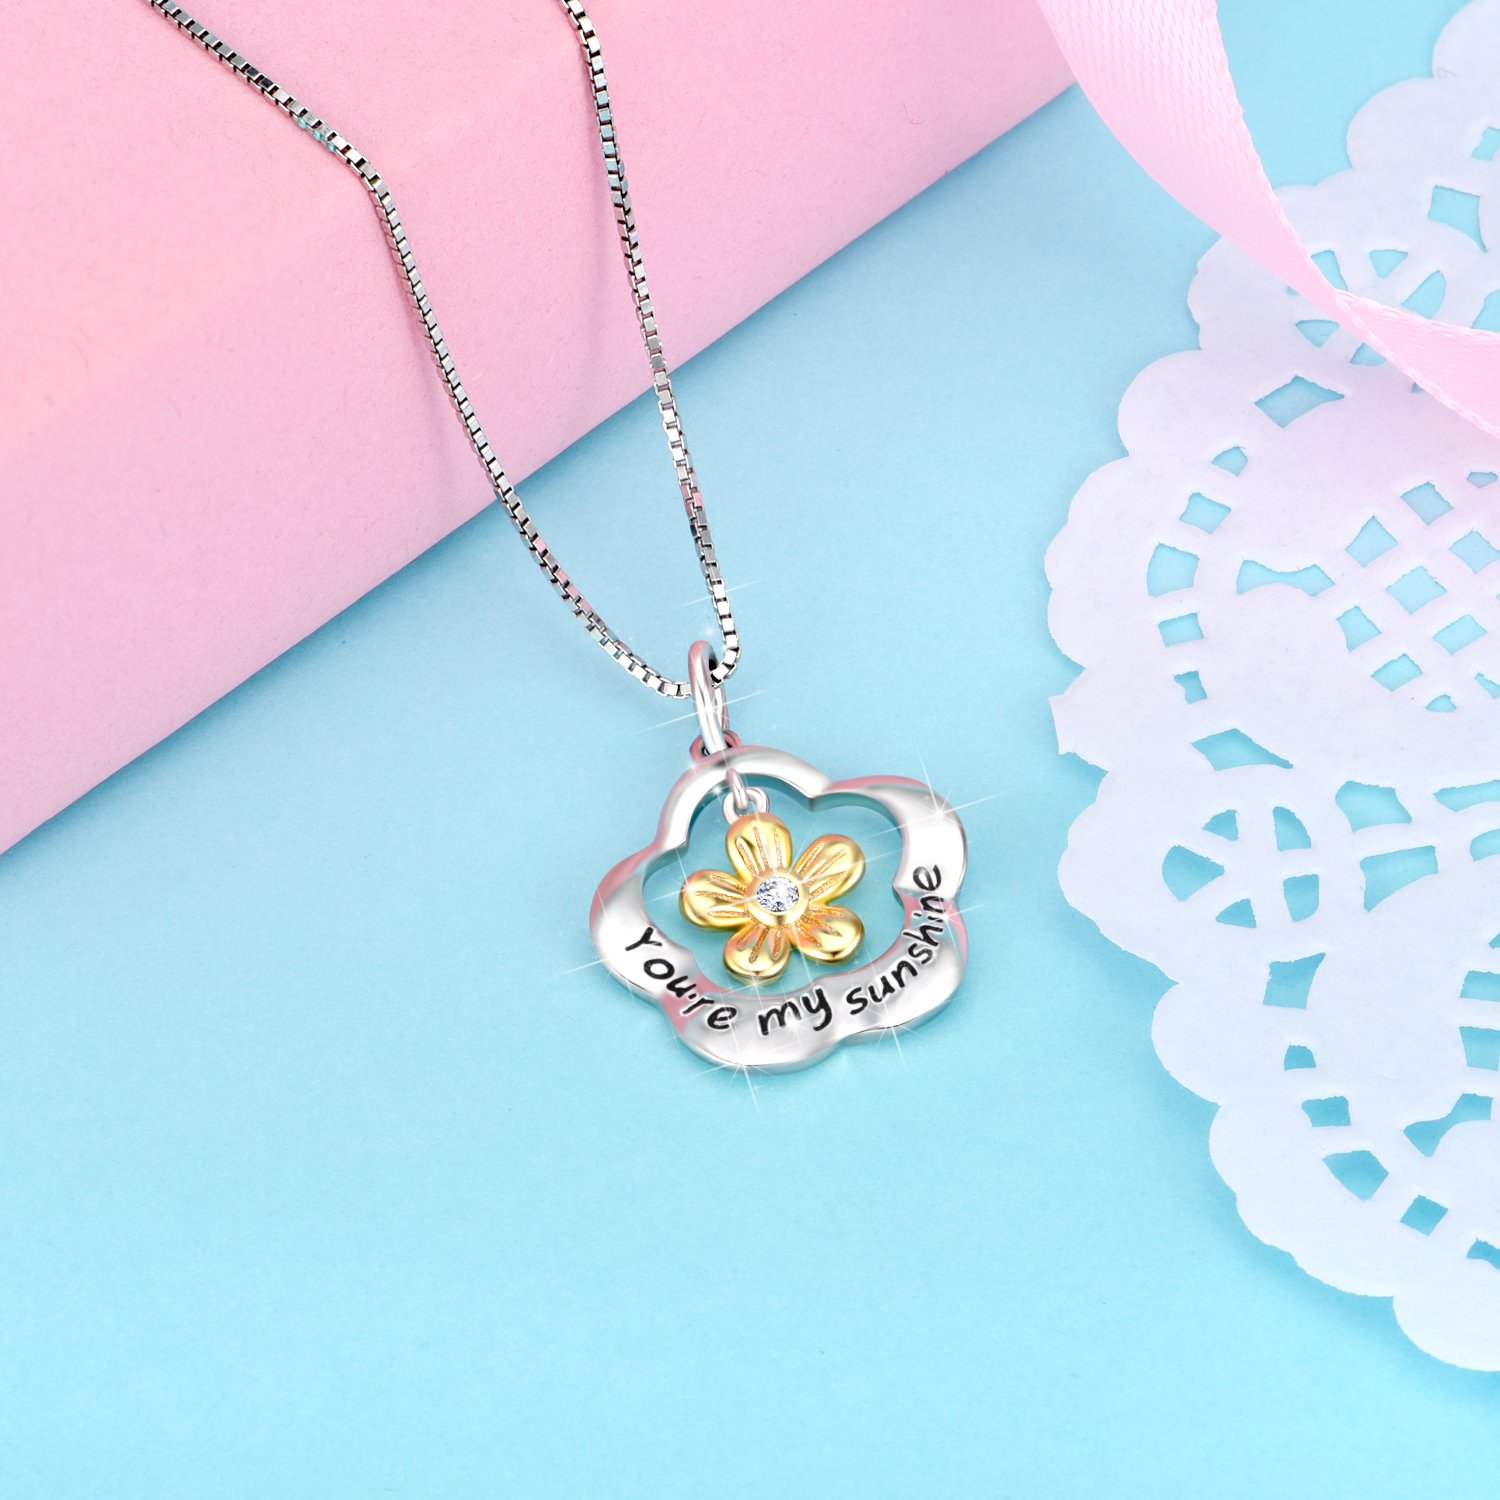 POPLYKE You are My Sunshine Sterling Silver Sunflower Pendant Necklace Gifts for Women Girls by POPLYKE (Image #3)